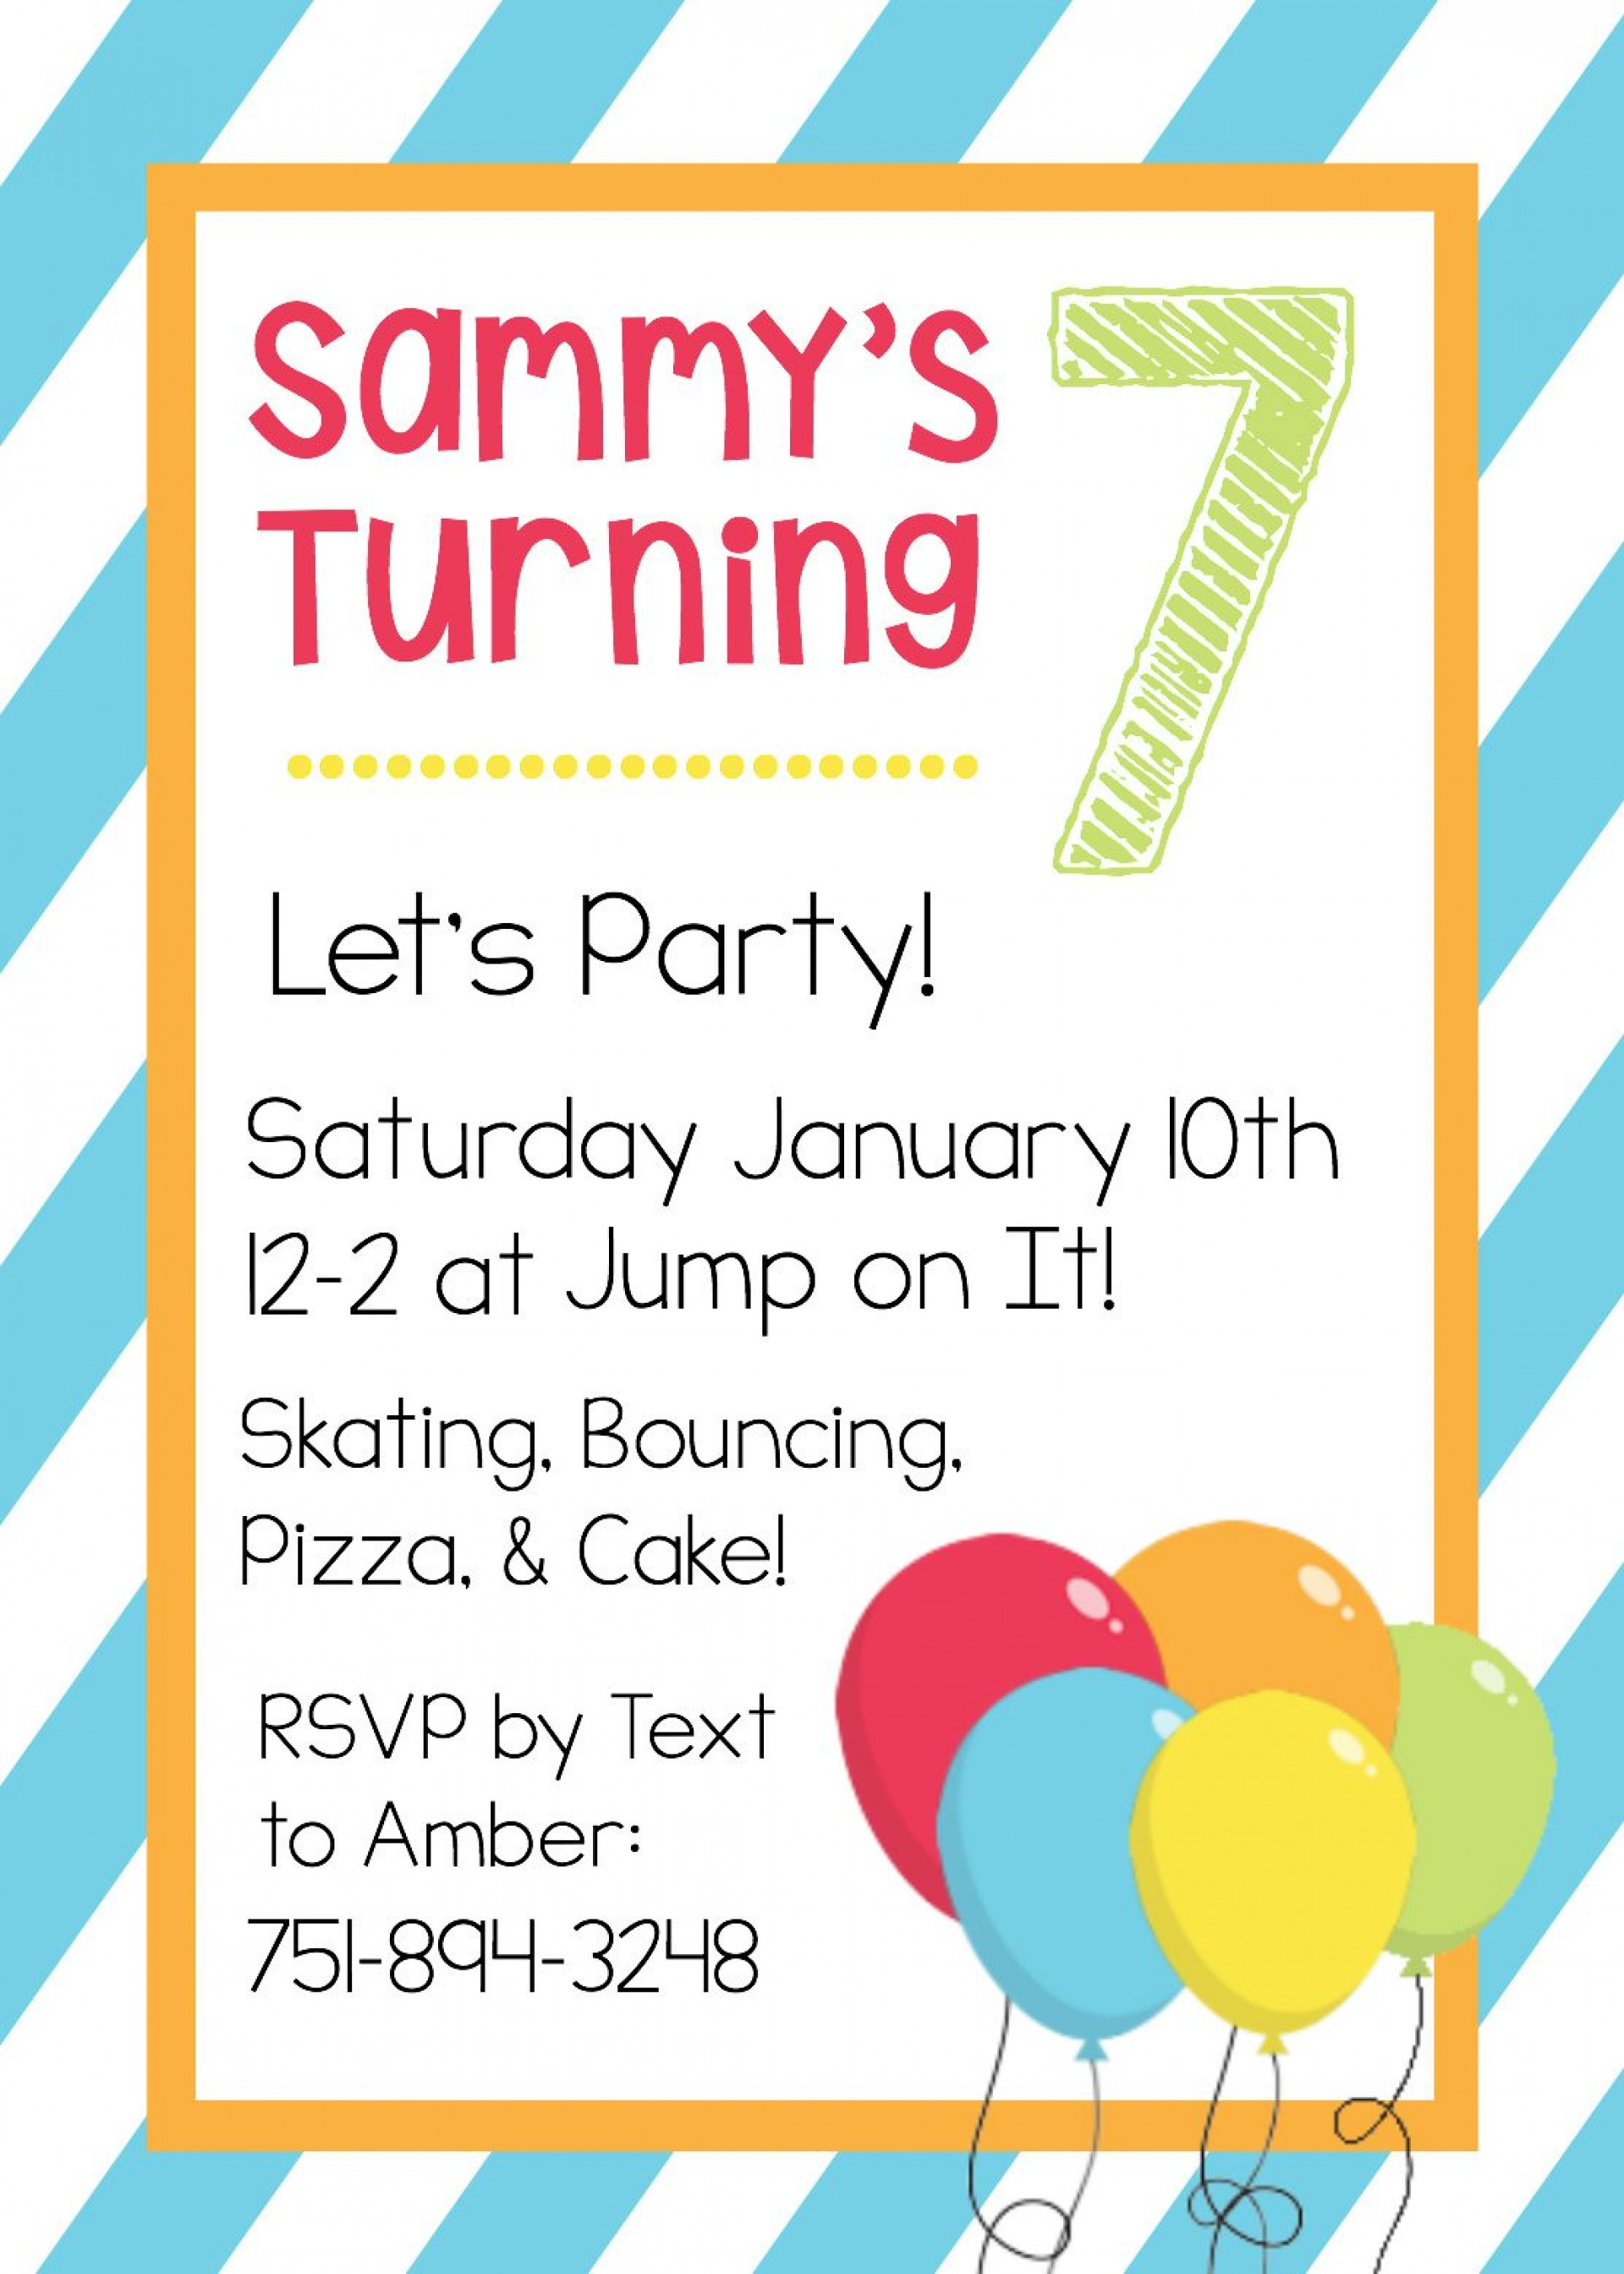 006 Top Free Online Birthday Party Invitation Template Example  Templates Maker1920